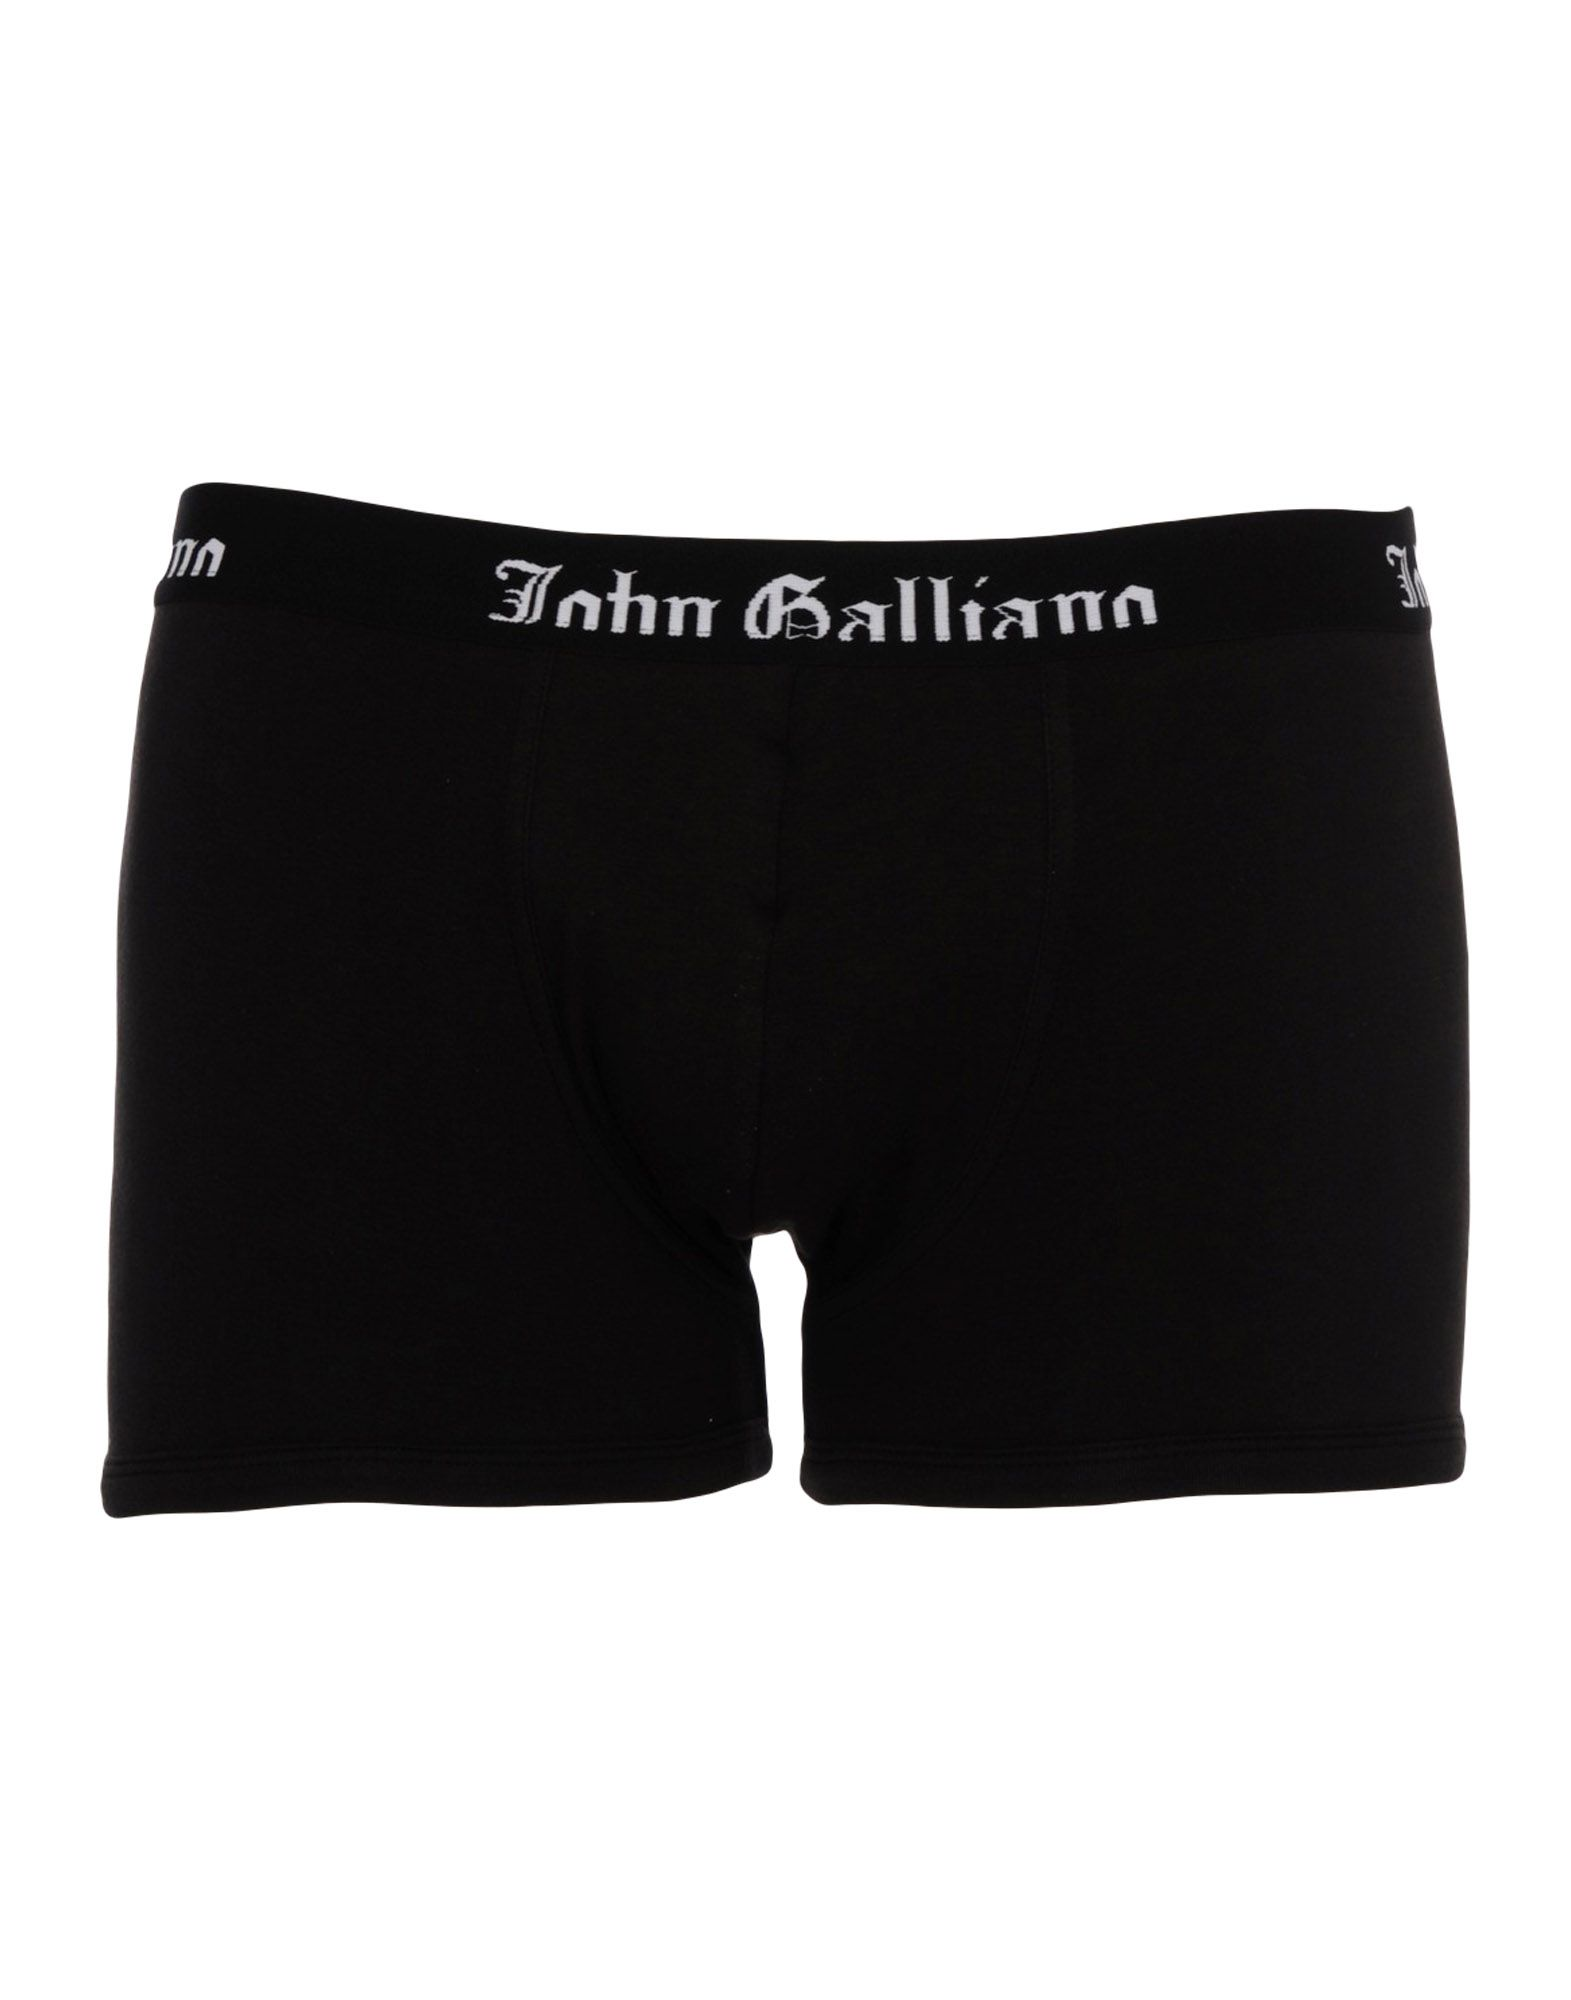 JOHN GALLIANO UNDERWEAR Boxers